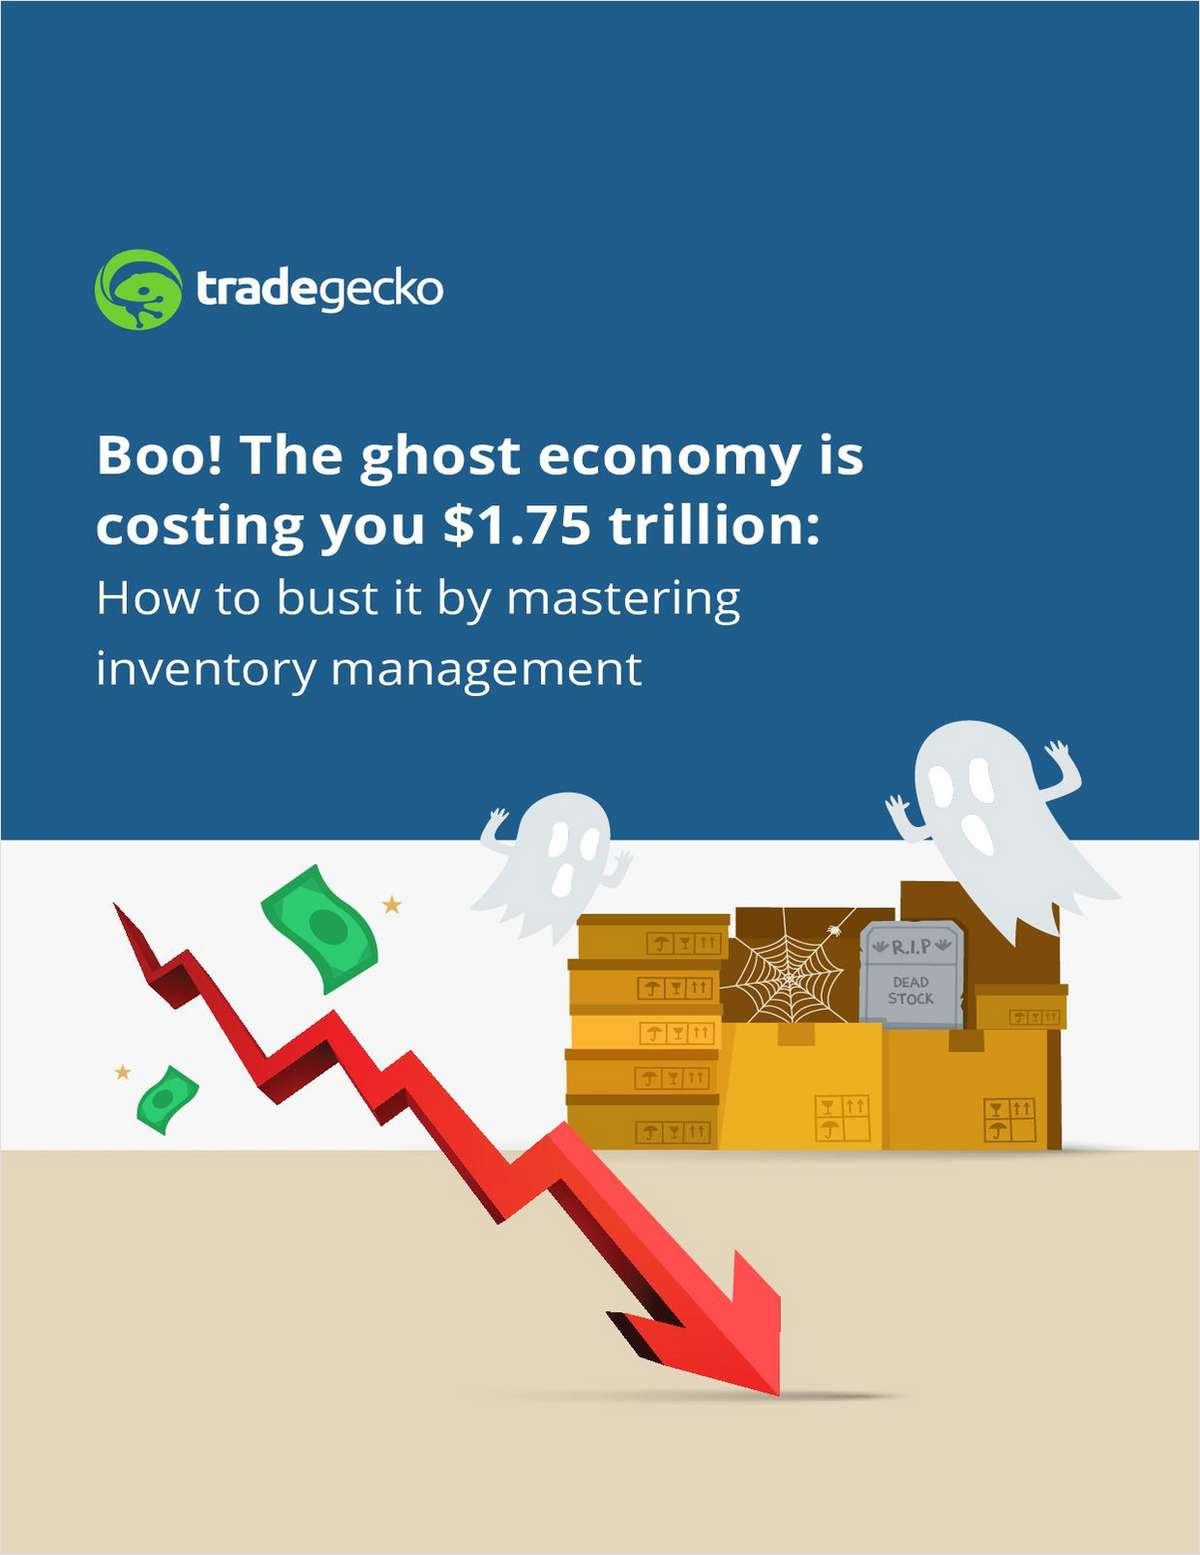 Boo! The Ghost Economy is Costing you $1.75 Trillion: How to Bust it by Mastering Inventory Management